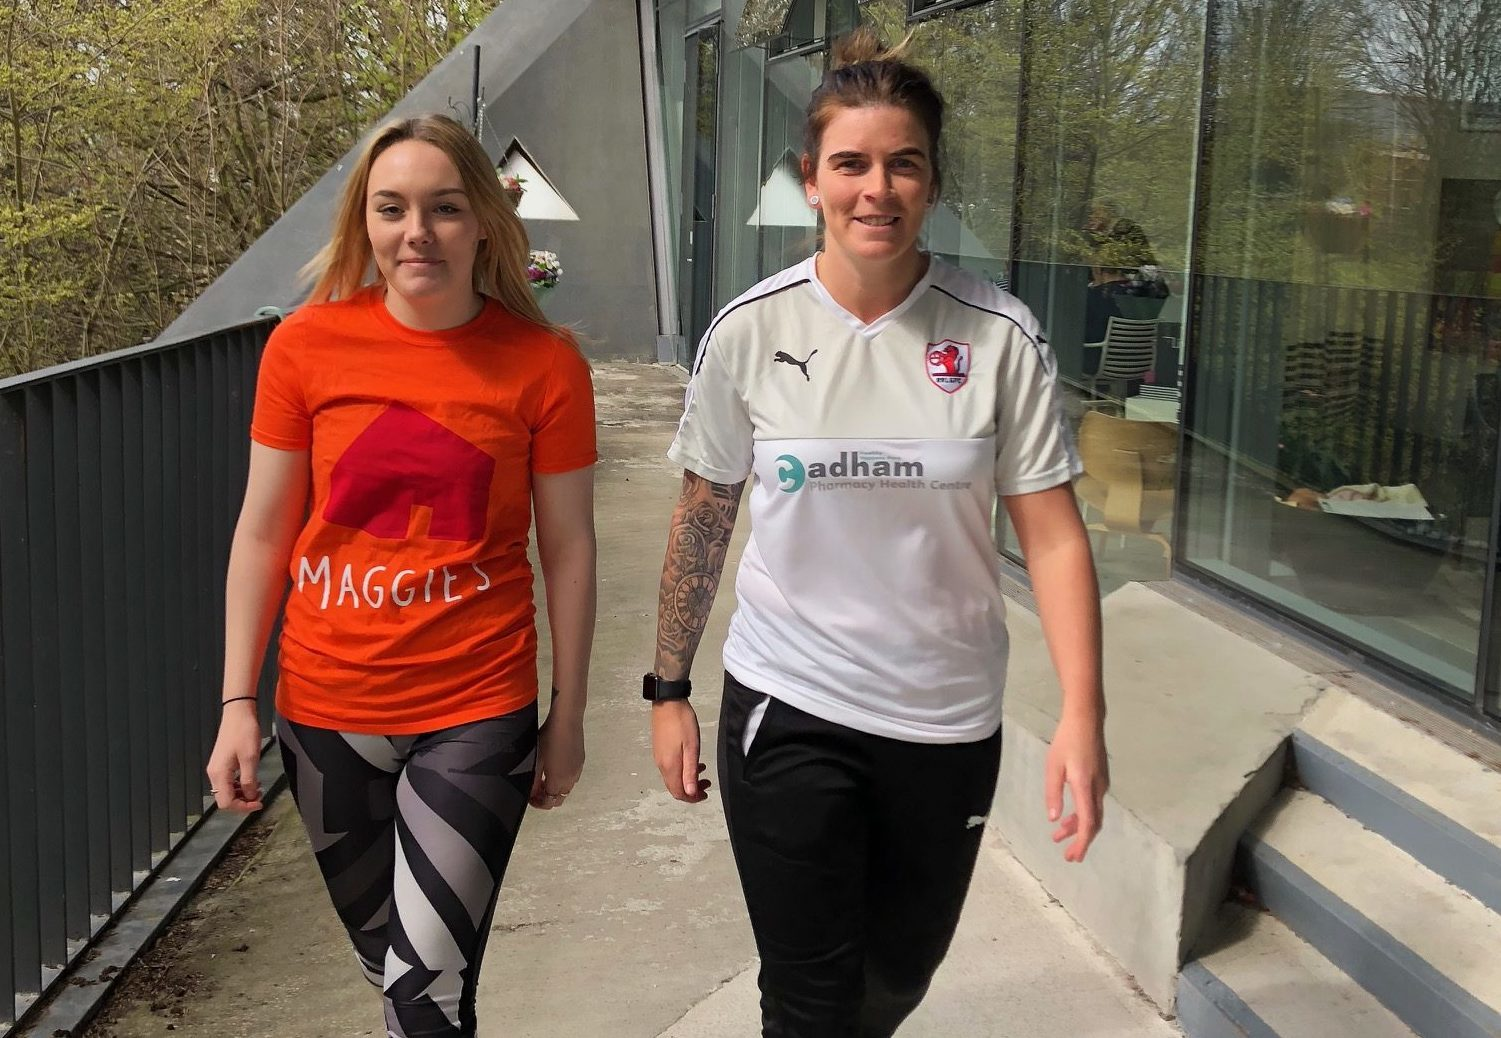 Footballers Stacey Penman and Tyler Rattray (left) will lead Maggie's Fife Twilight Walk